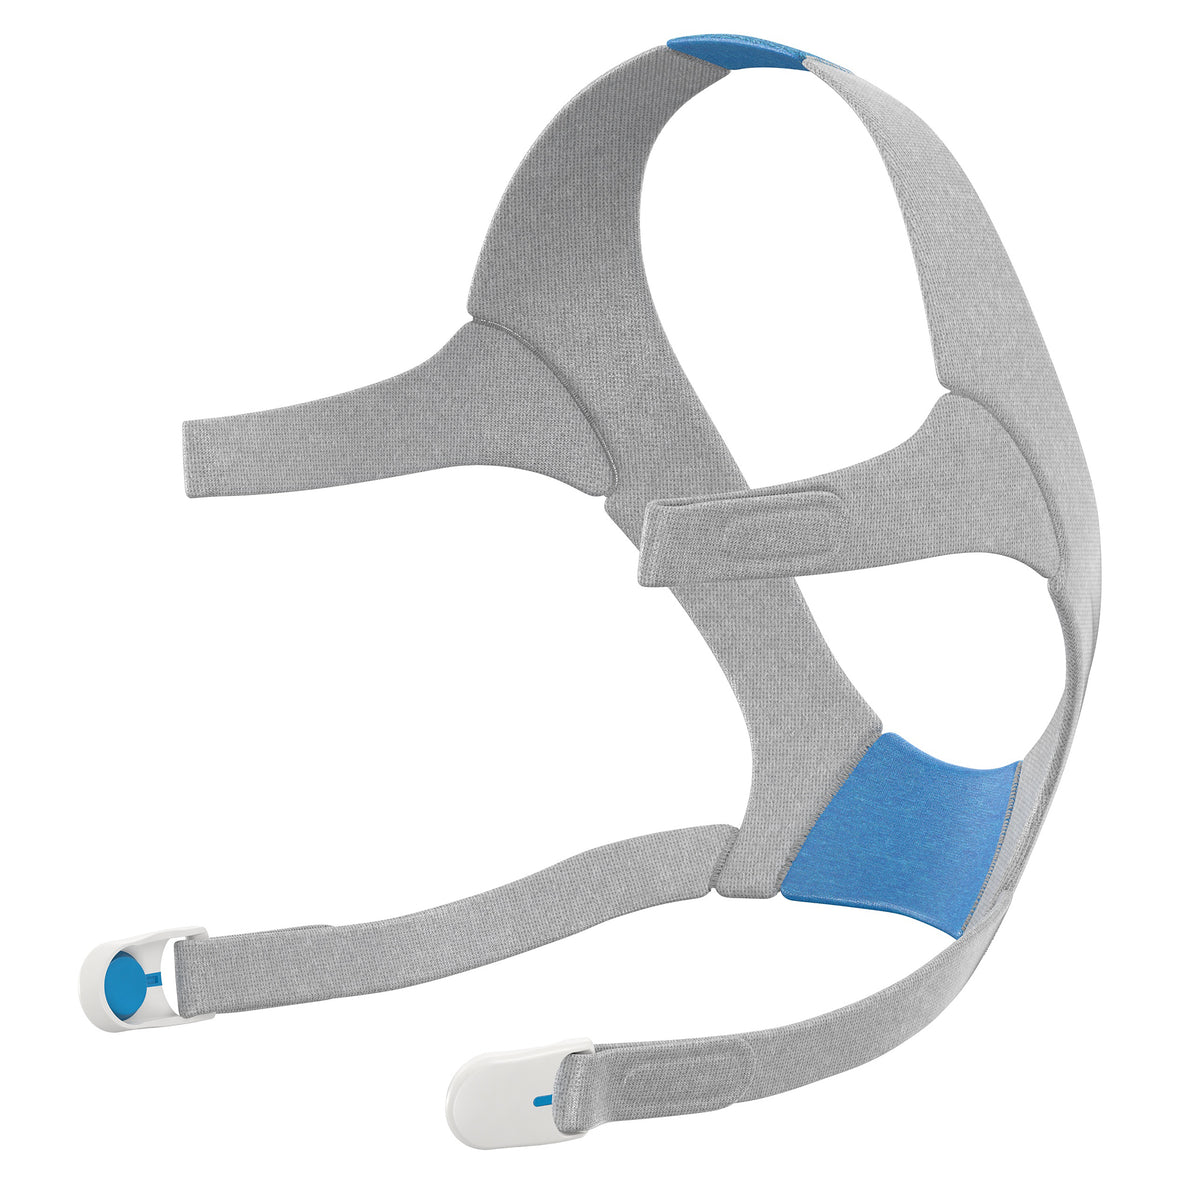 Airfit N20 Complete Mask System as seen from the side showing the straps